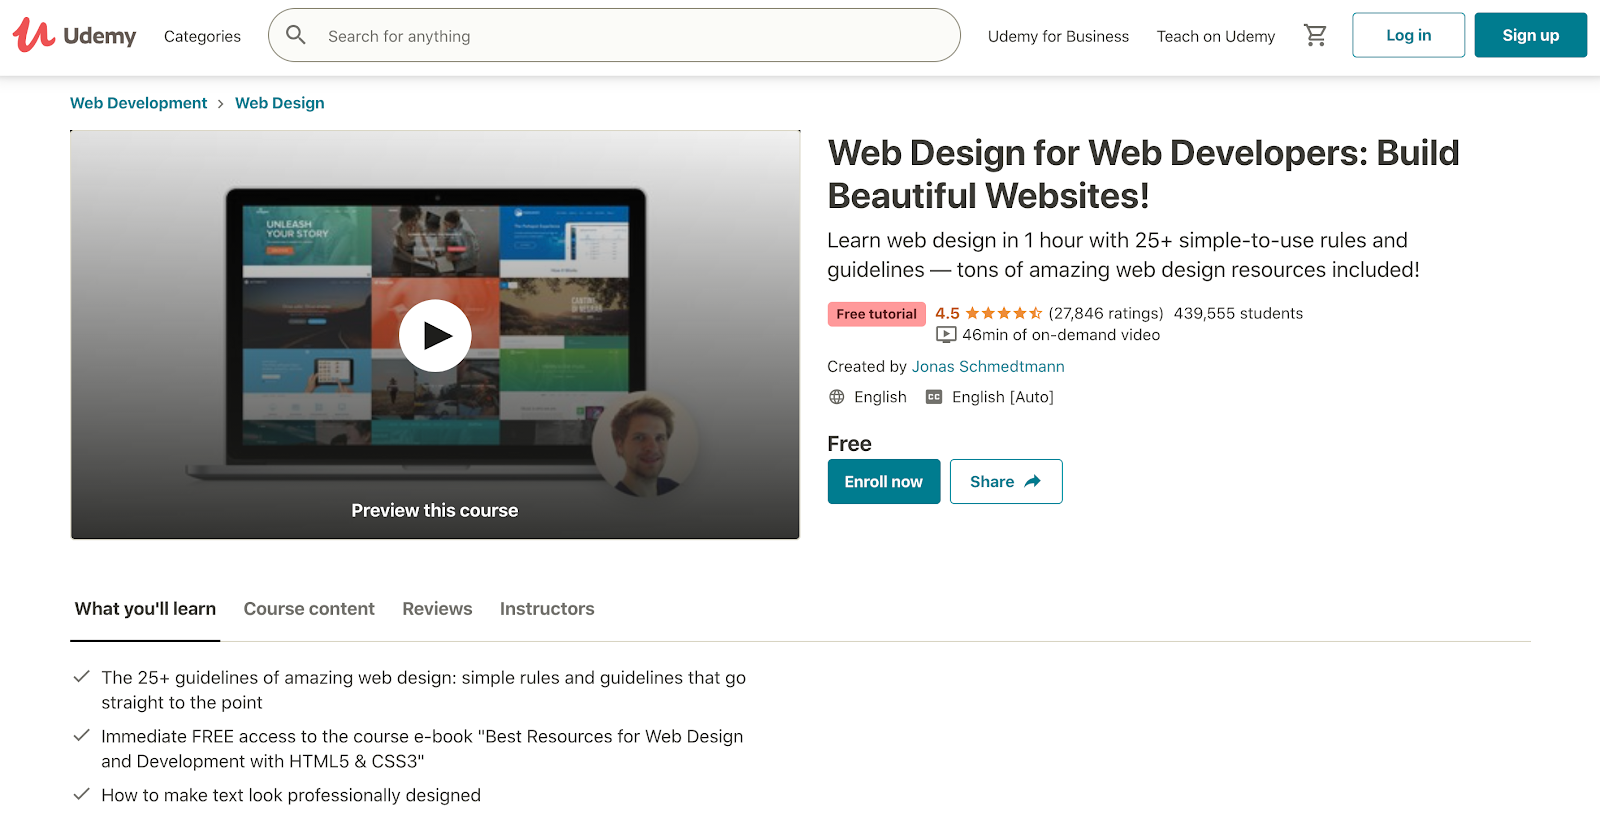 Udemy's web design course by Jonas Schmedtmann